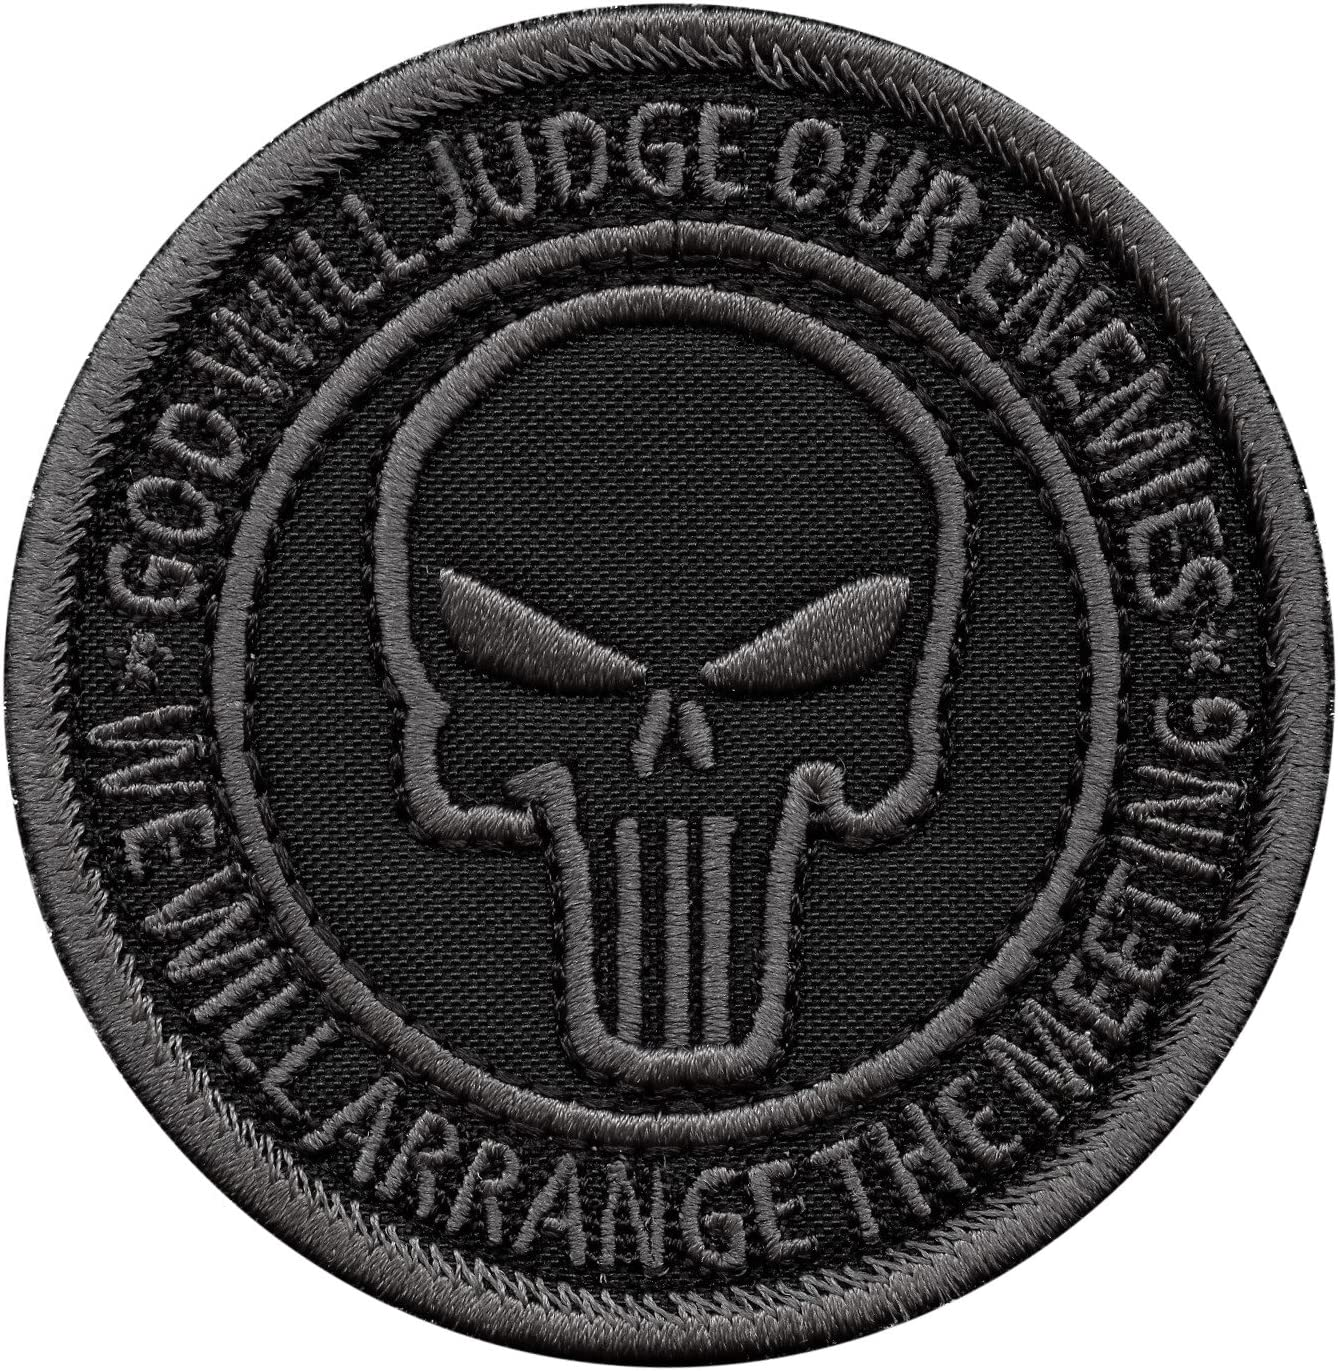 2AFTER1 God Will Judge Our Enemies ACU Subdued US Navy Seals DEVGRU NSWDG Morale Touch Fastener Patch